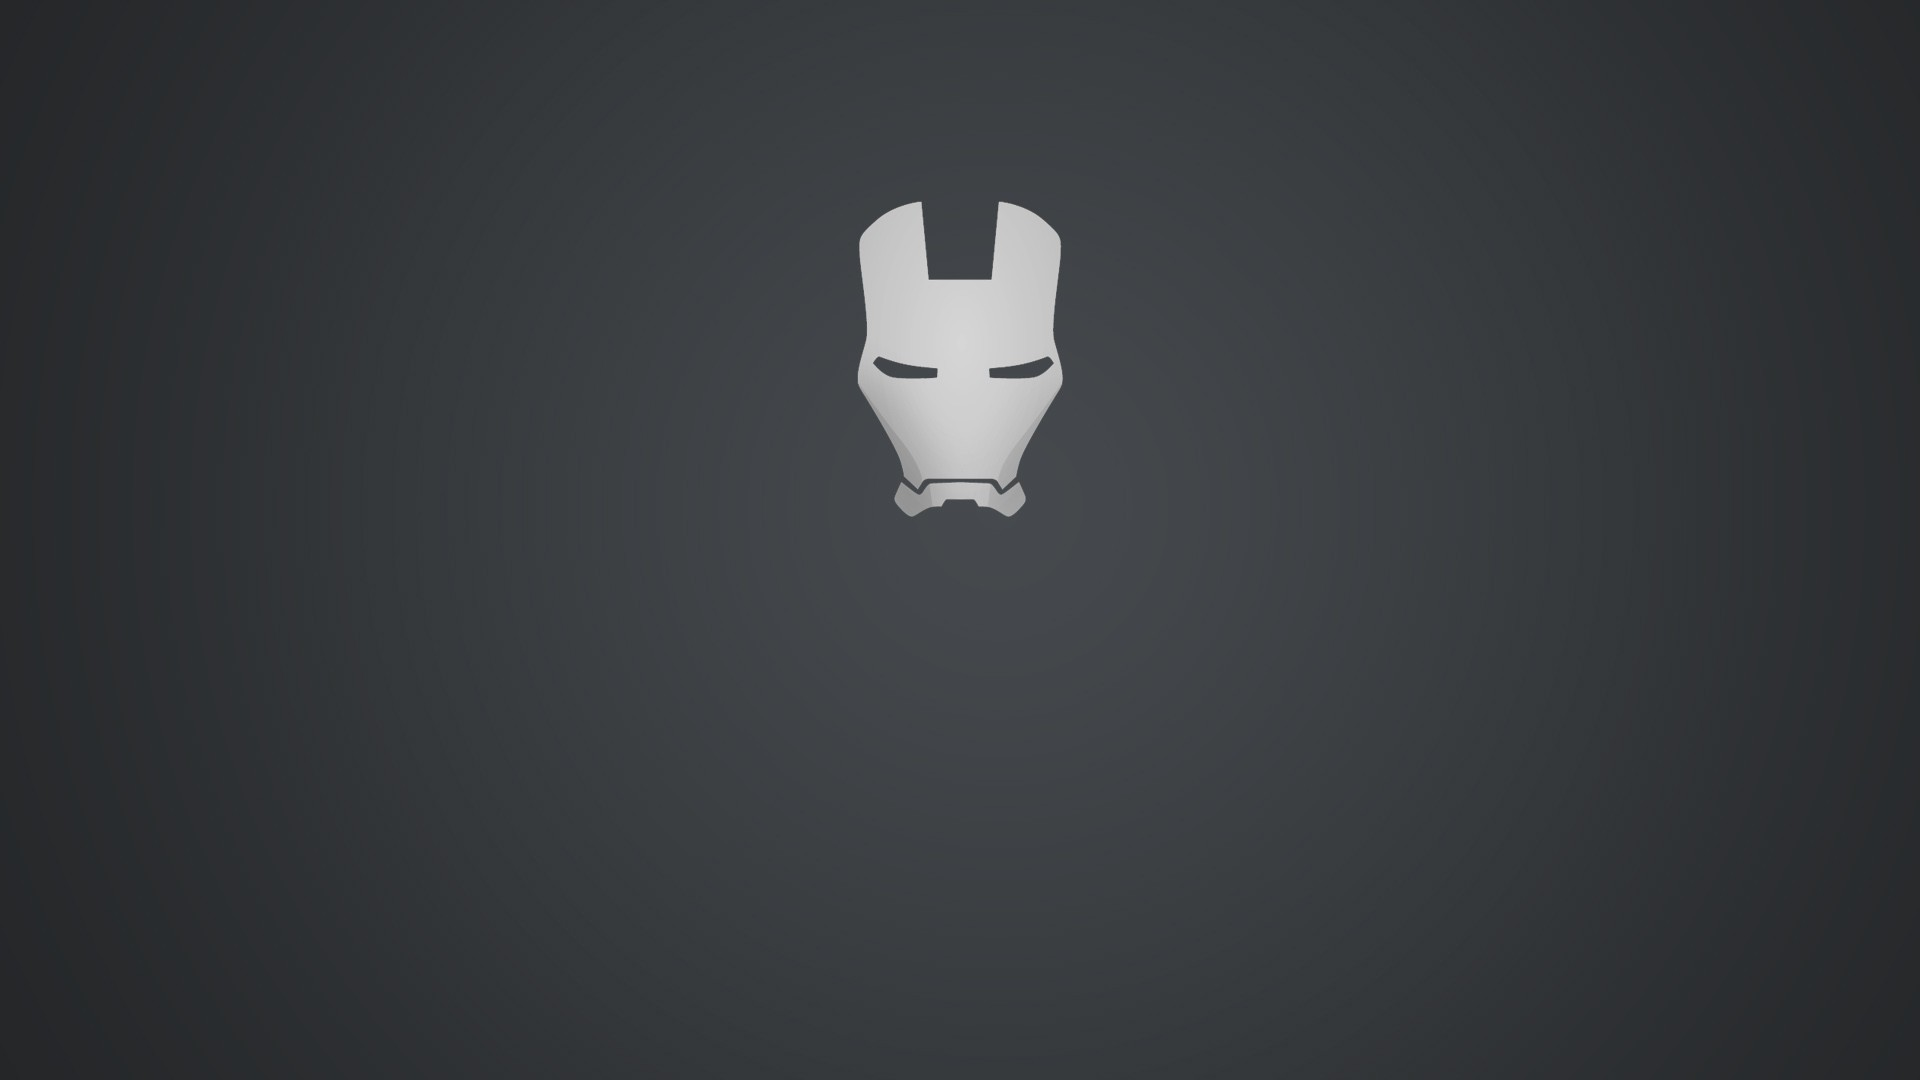 Iron Man Hd Wallpaper Background Image 1920x1080 Id 969449